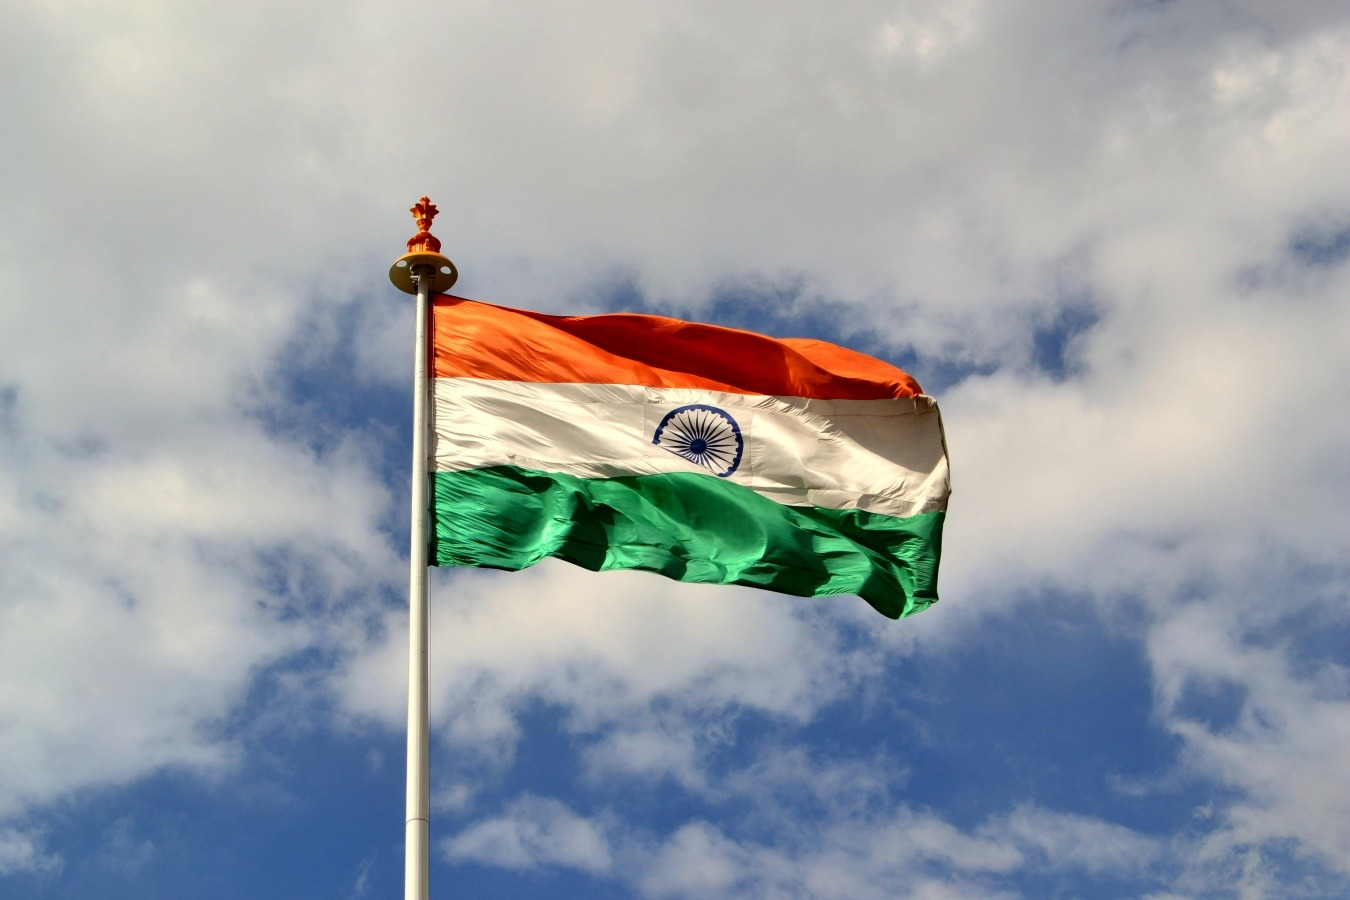 India proposes amendment to phase out HFC refrigerants under the Montreal Protocol.